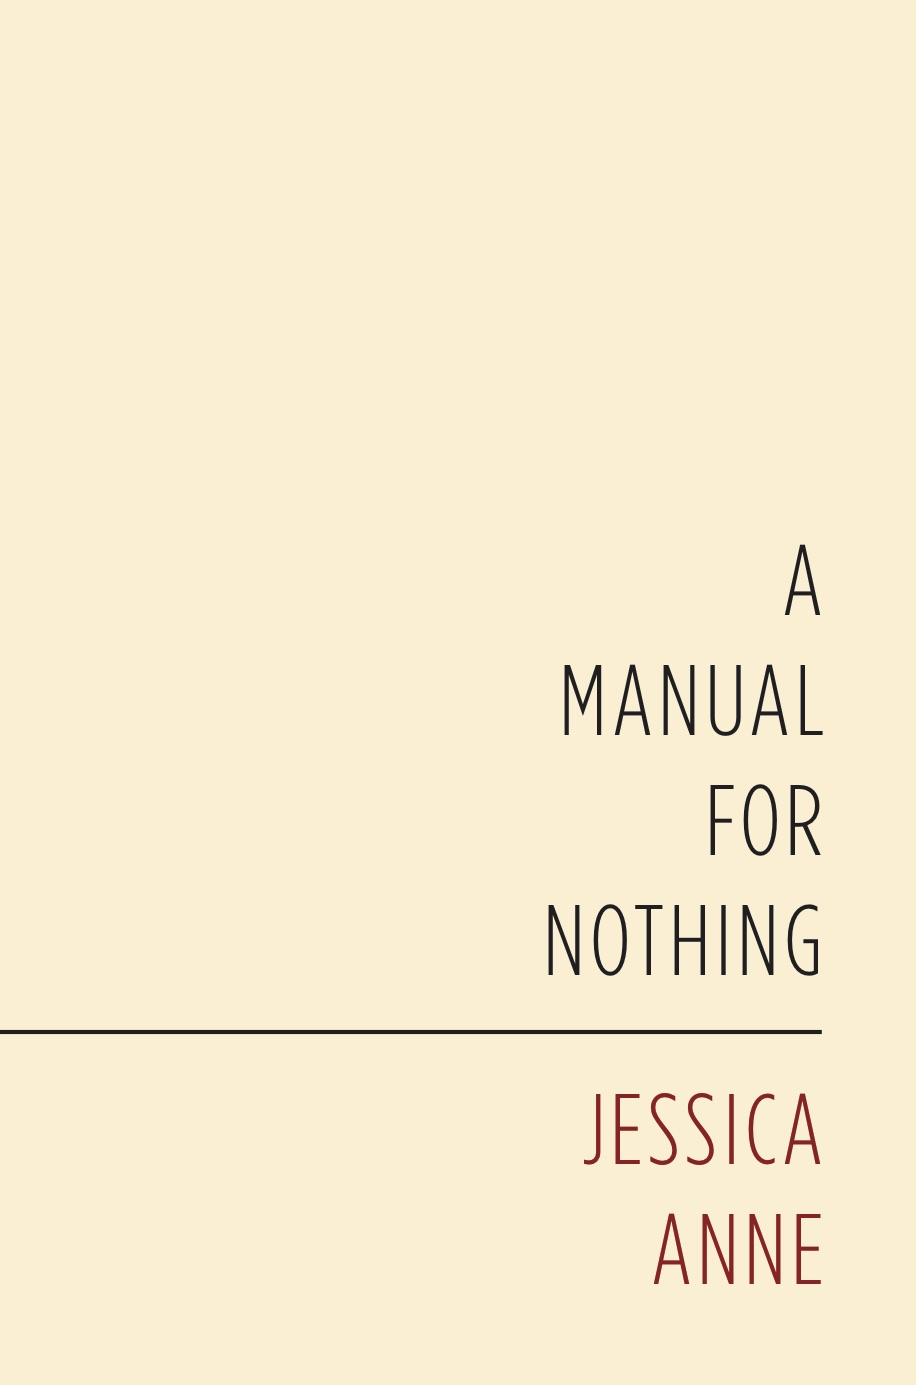 A Manual for Nothing by Jessica Anne